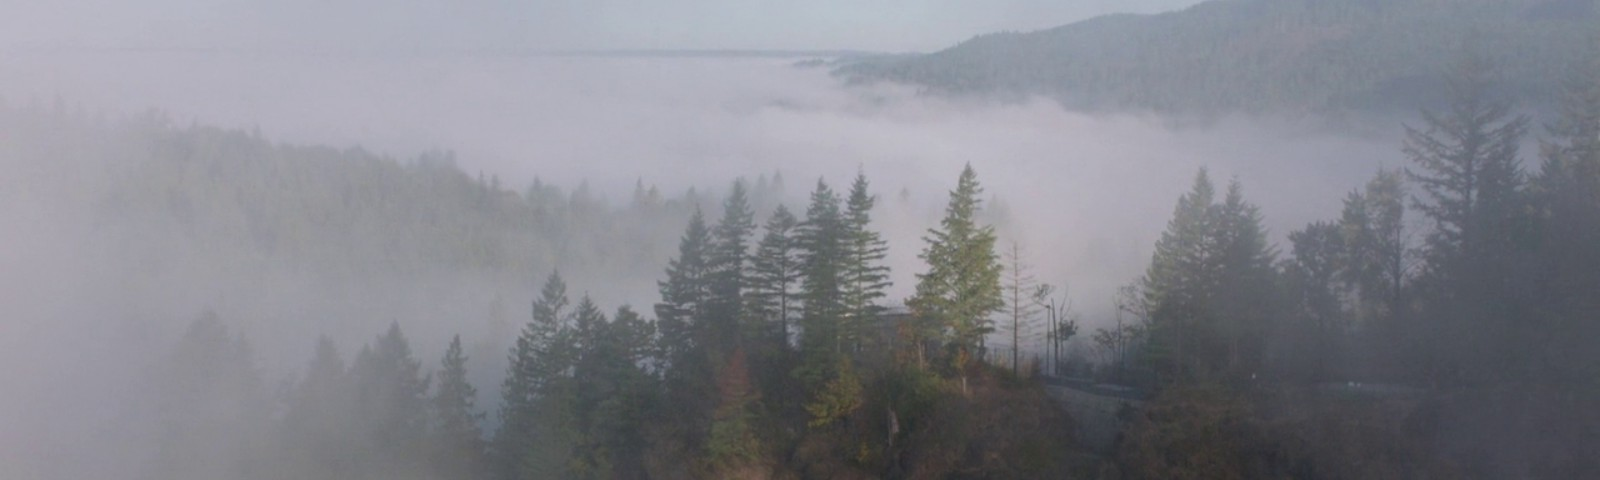 A foggy shot of the mountains and forests outside the fictional town of Twin Peaks.